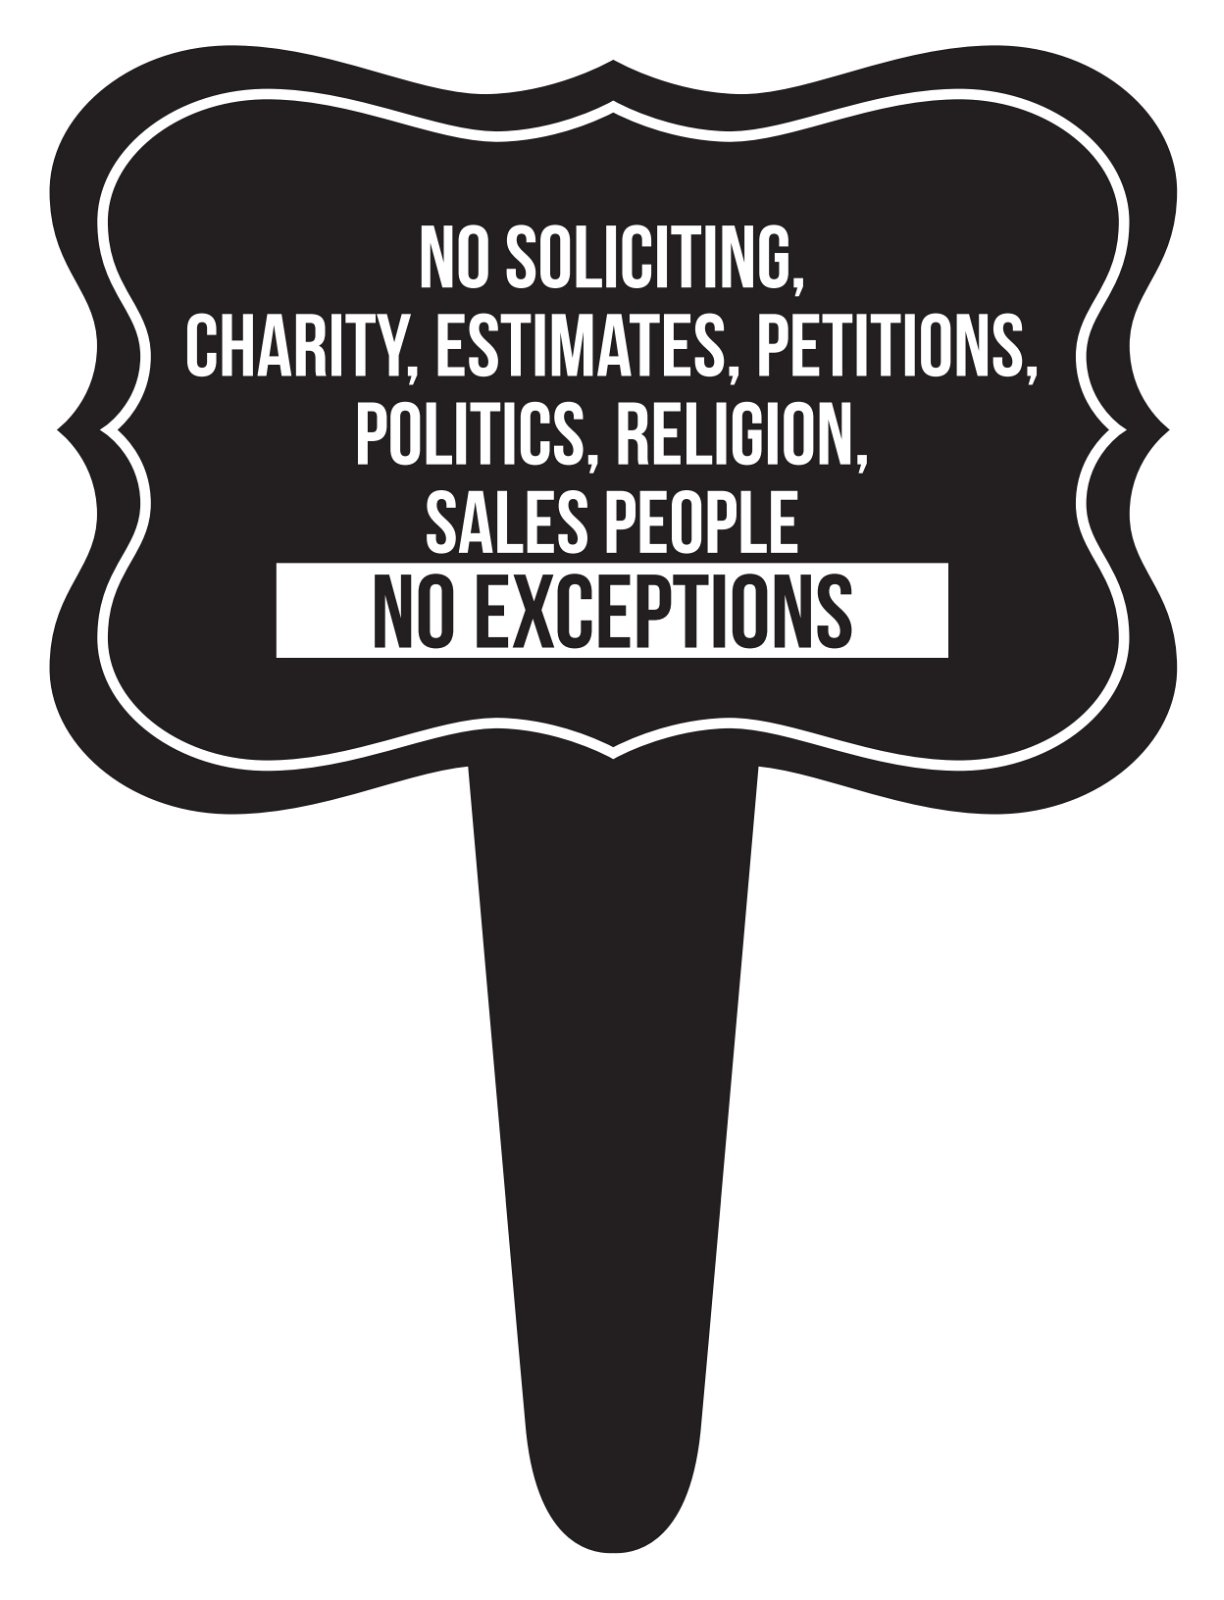 iCandy Combat No Soliciting, Charity, Estimates Sales People No Exceptions Home Yard Lawn Sign, Black, 12x16, Single